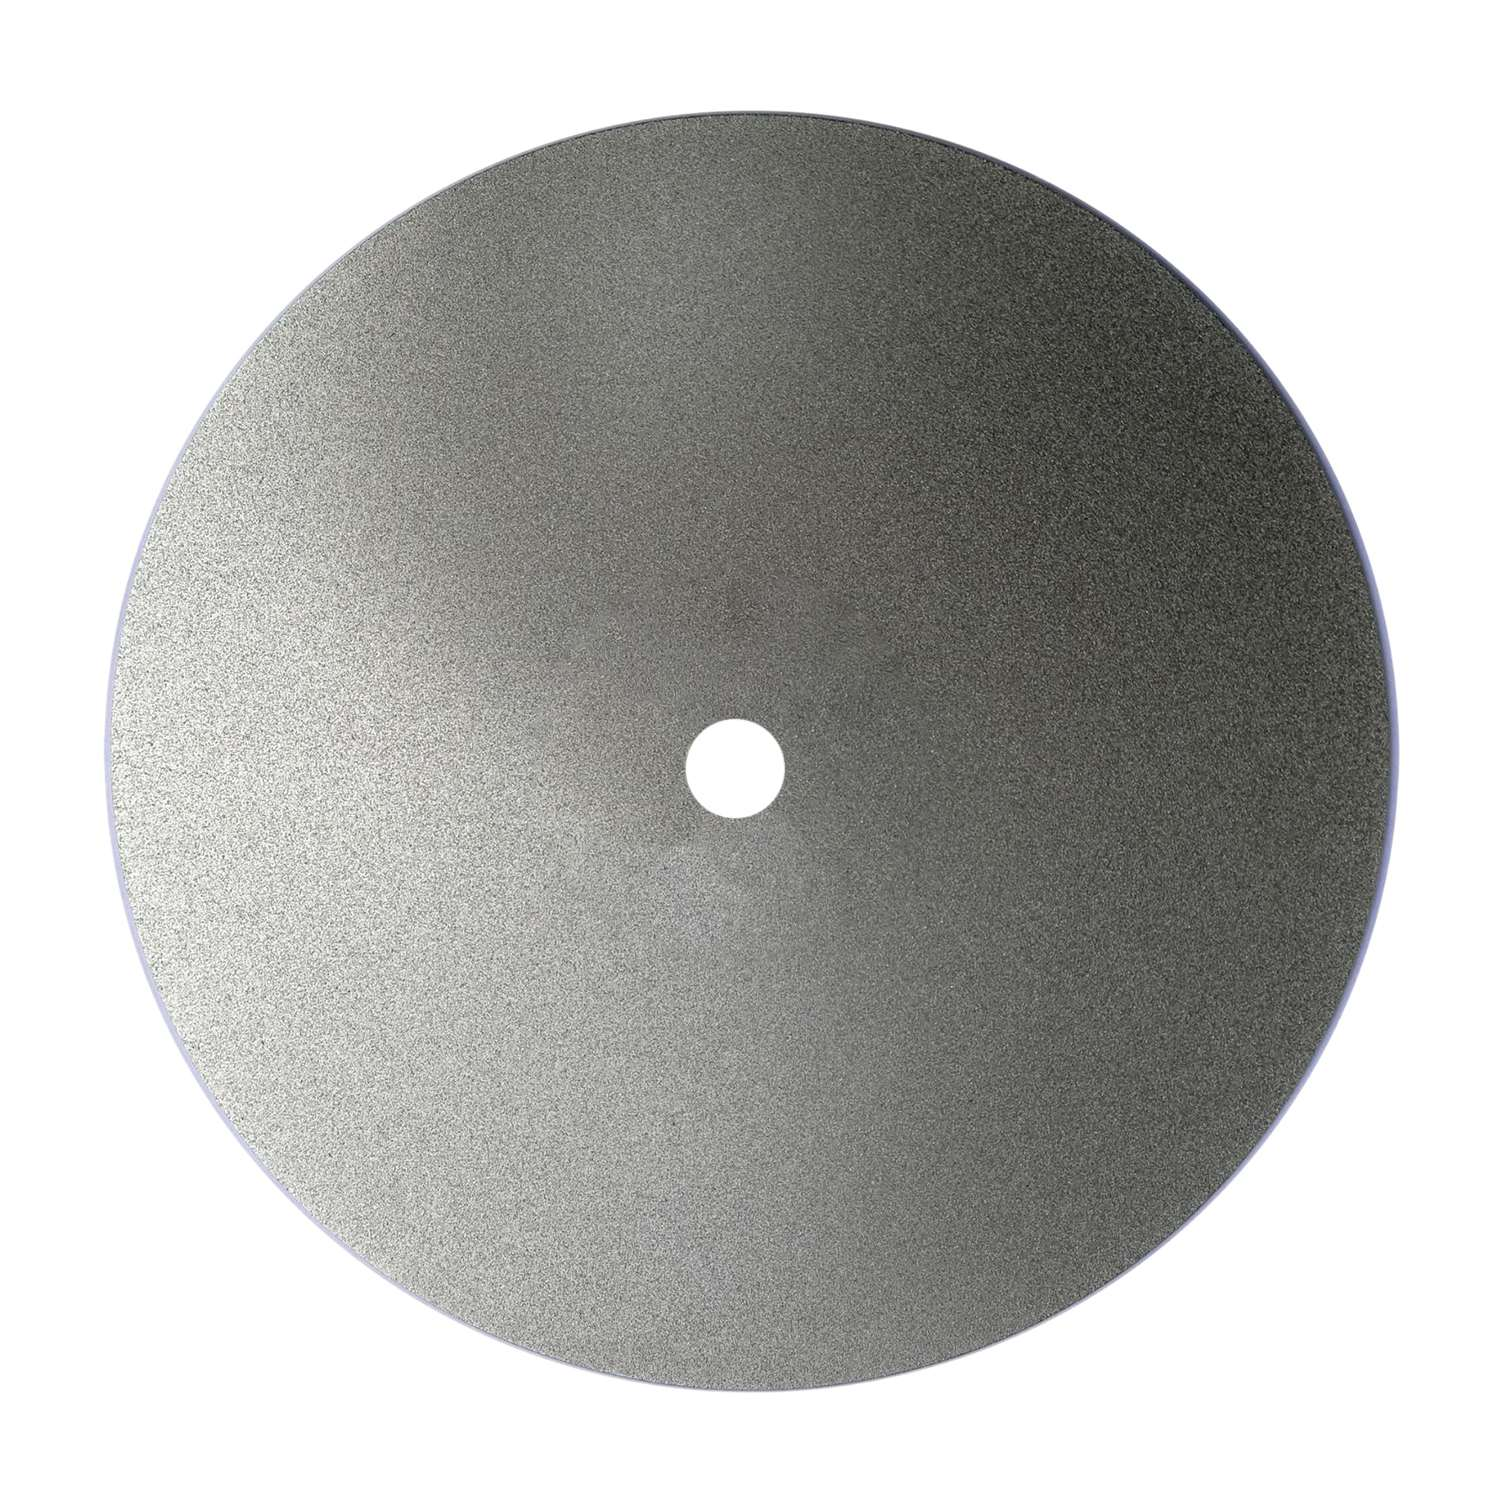 300mm 12-Inch Grit 100 Diamond Coated Flat Lap Disk Wheel Grinding Sanding Disc300mm 12-Inch Grit 100 Diamond Coated Flat Lap Disk Wheel Grinding Sanding Disc